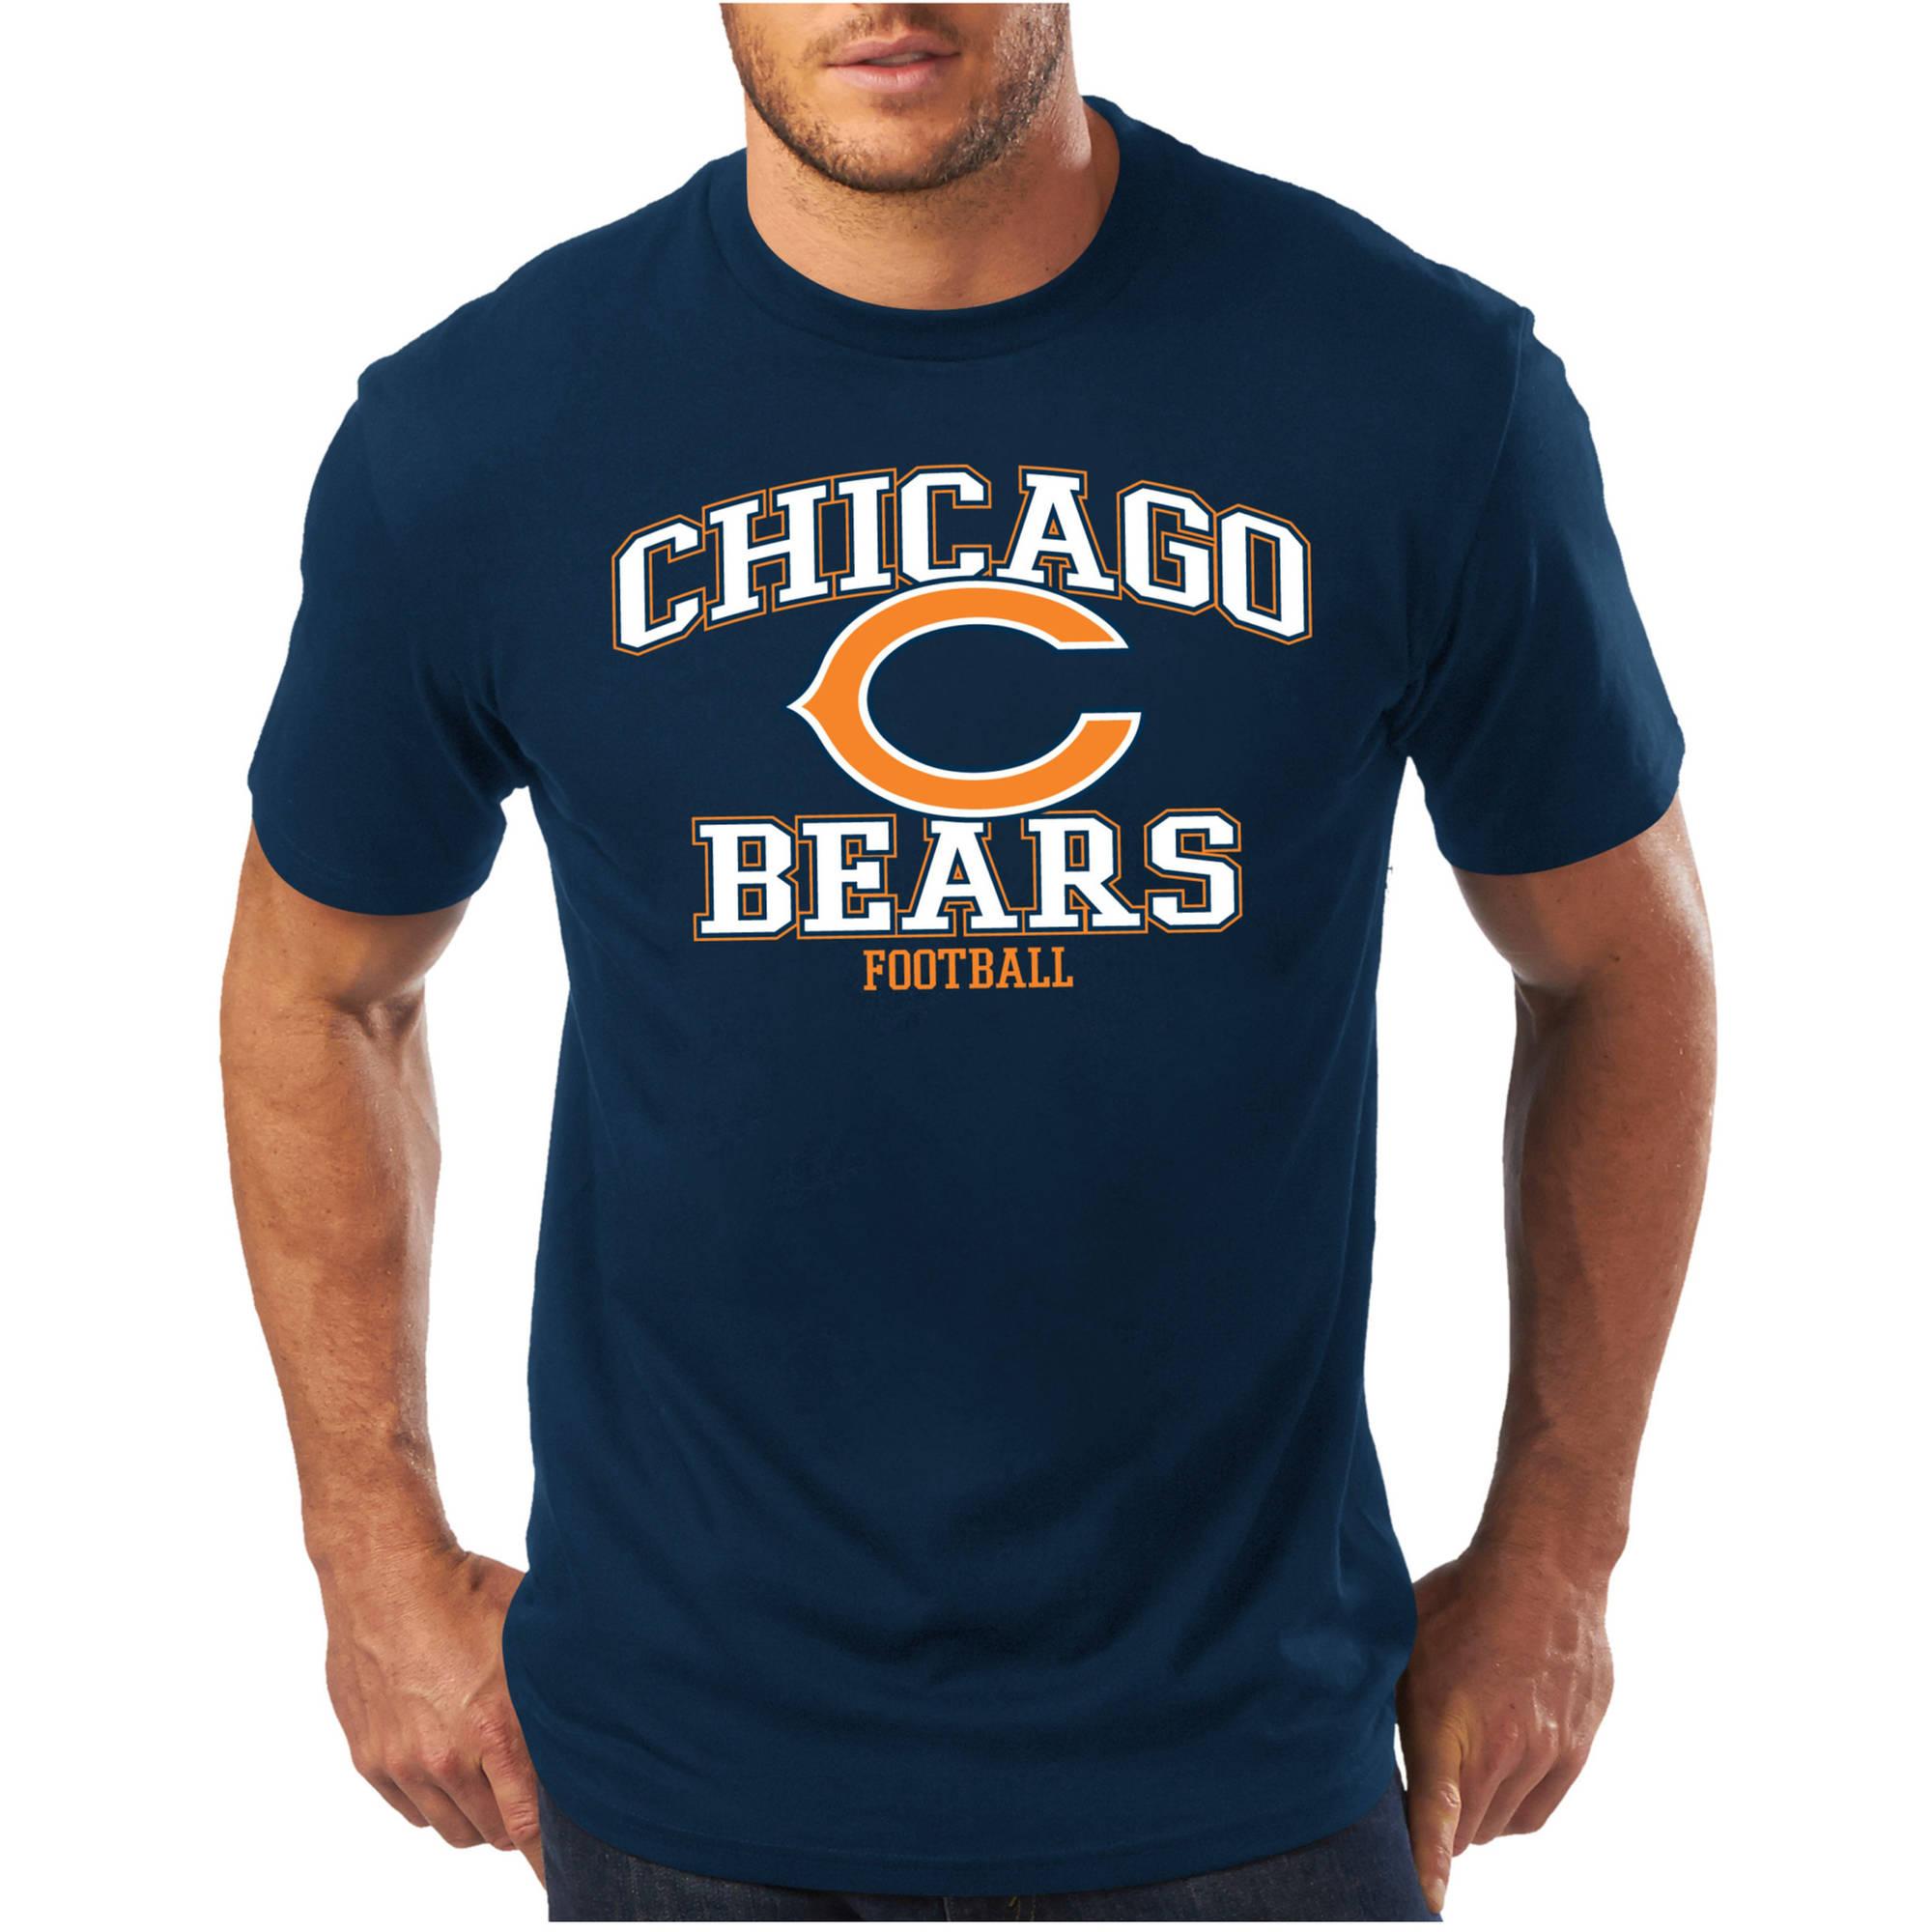 NFL Men's Chicago Bears Short Sleeve Tee